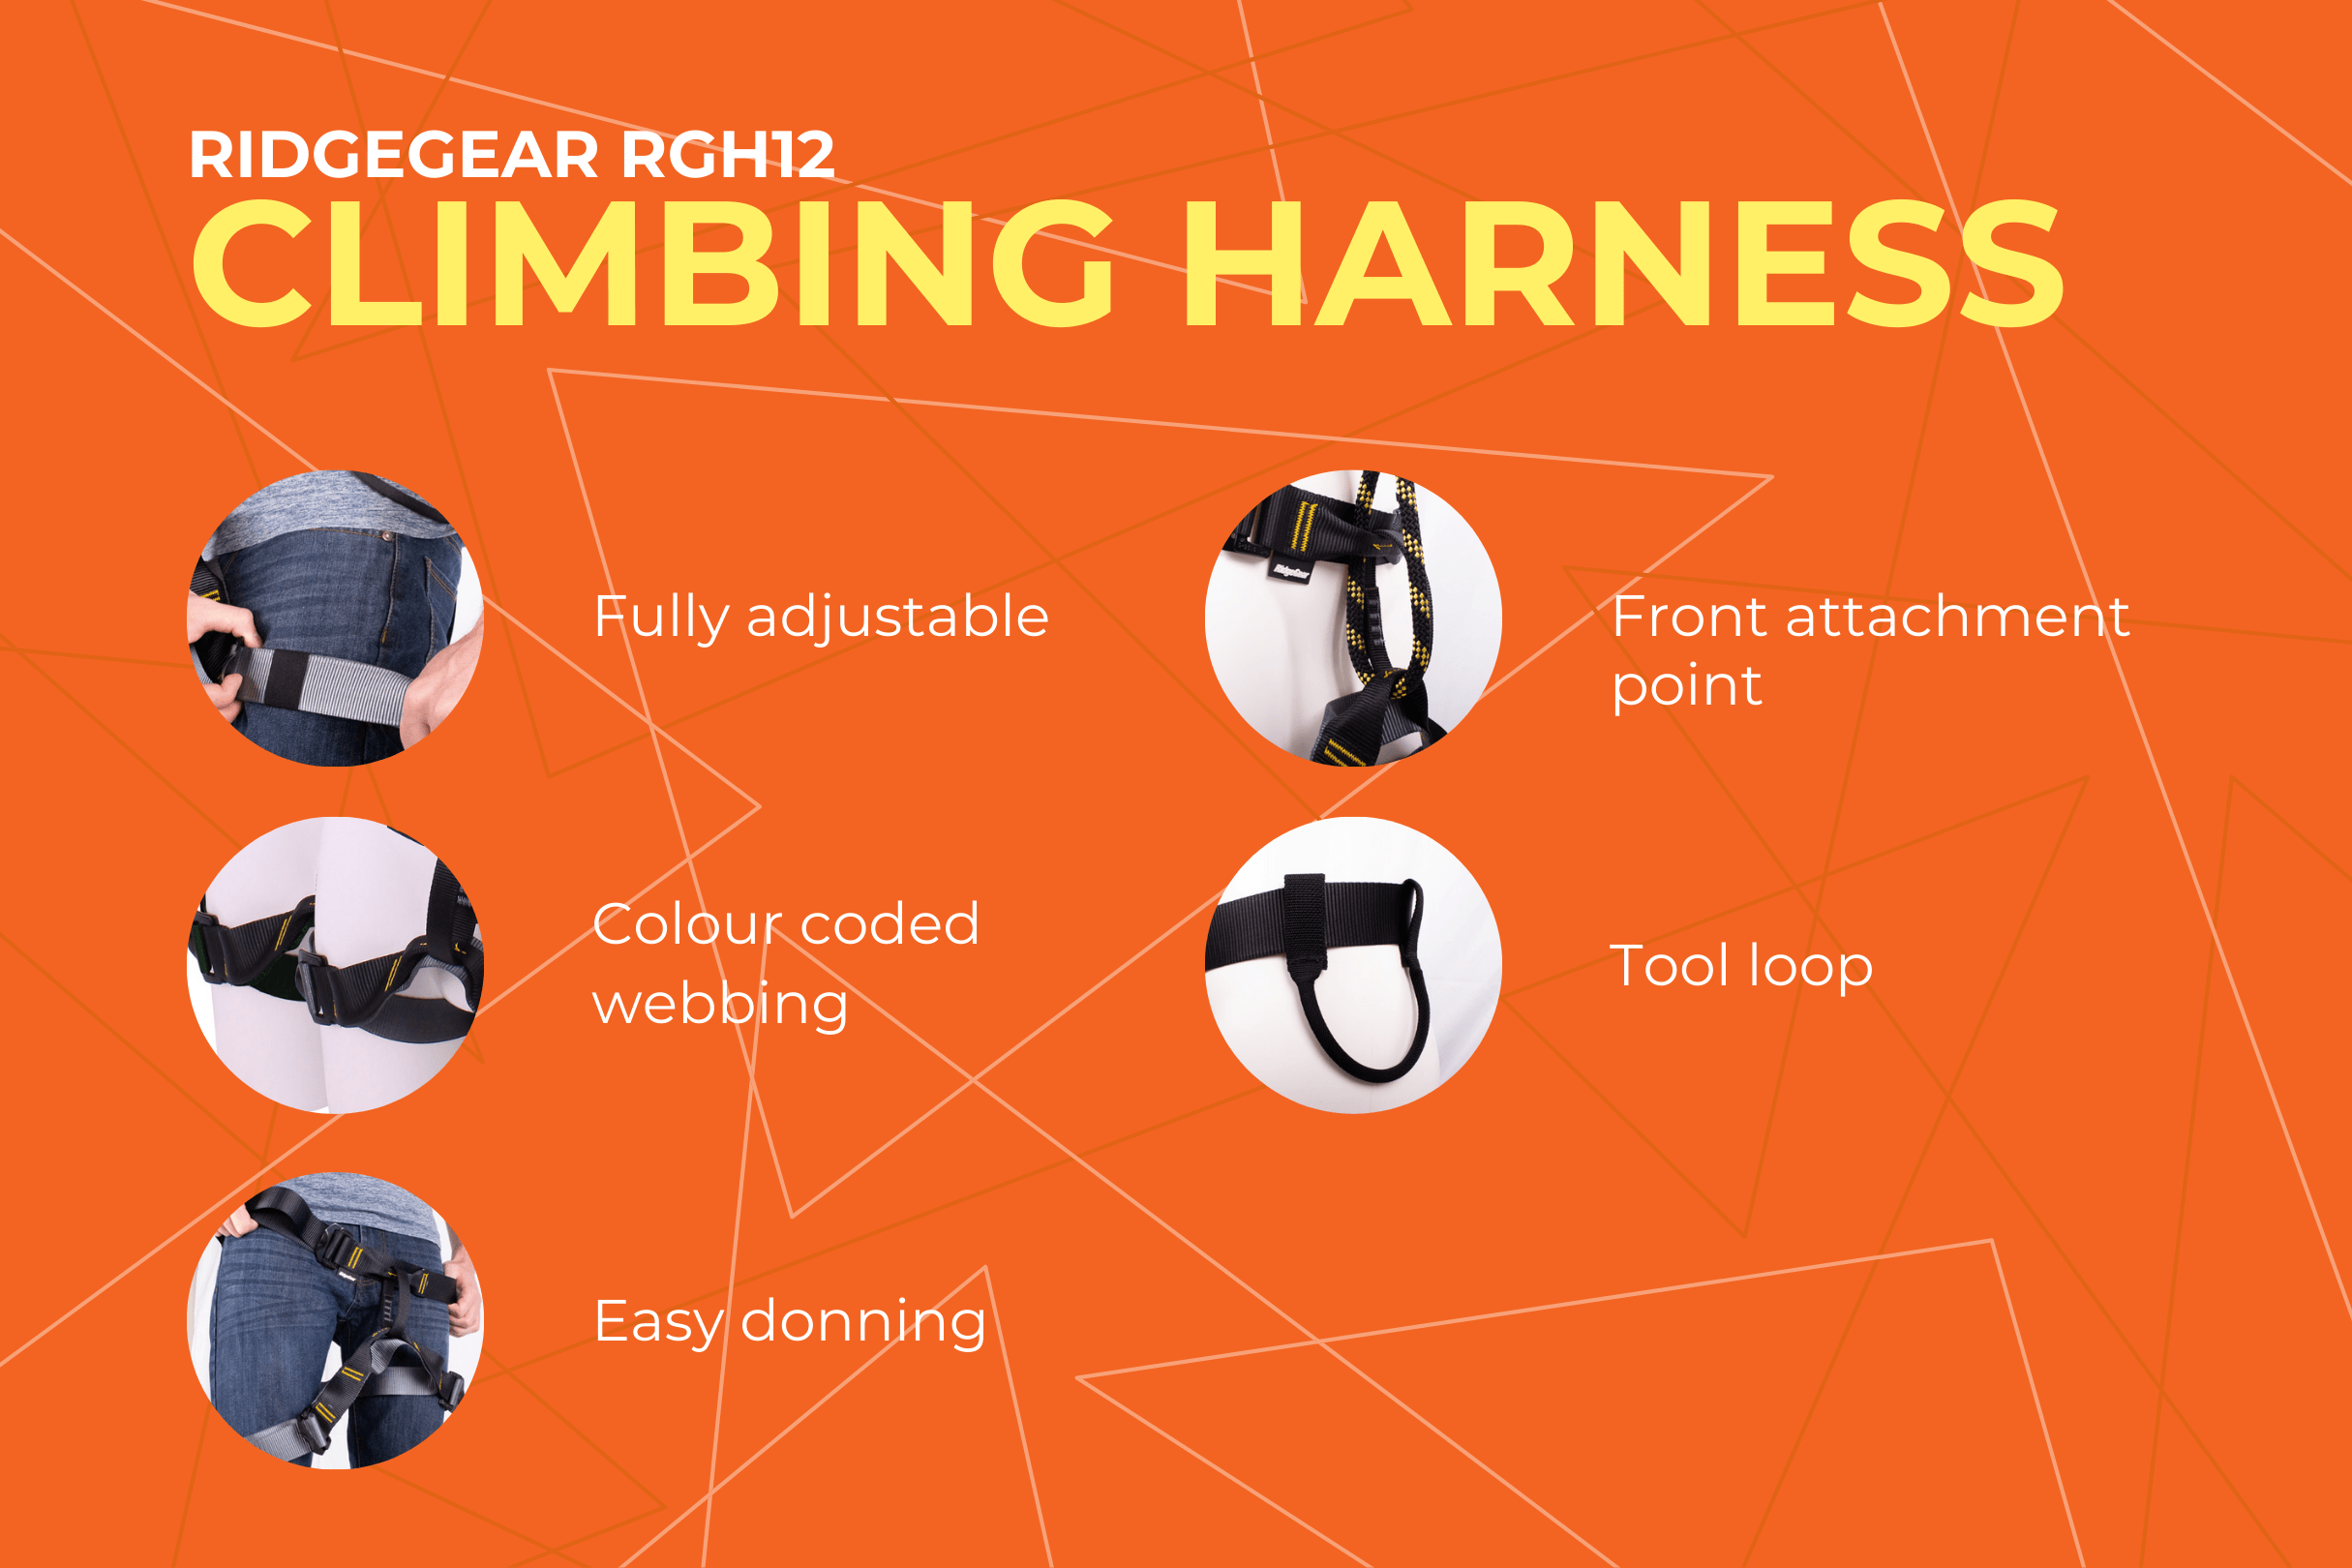 RGH12 Climbing Harness Key Features